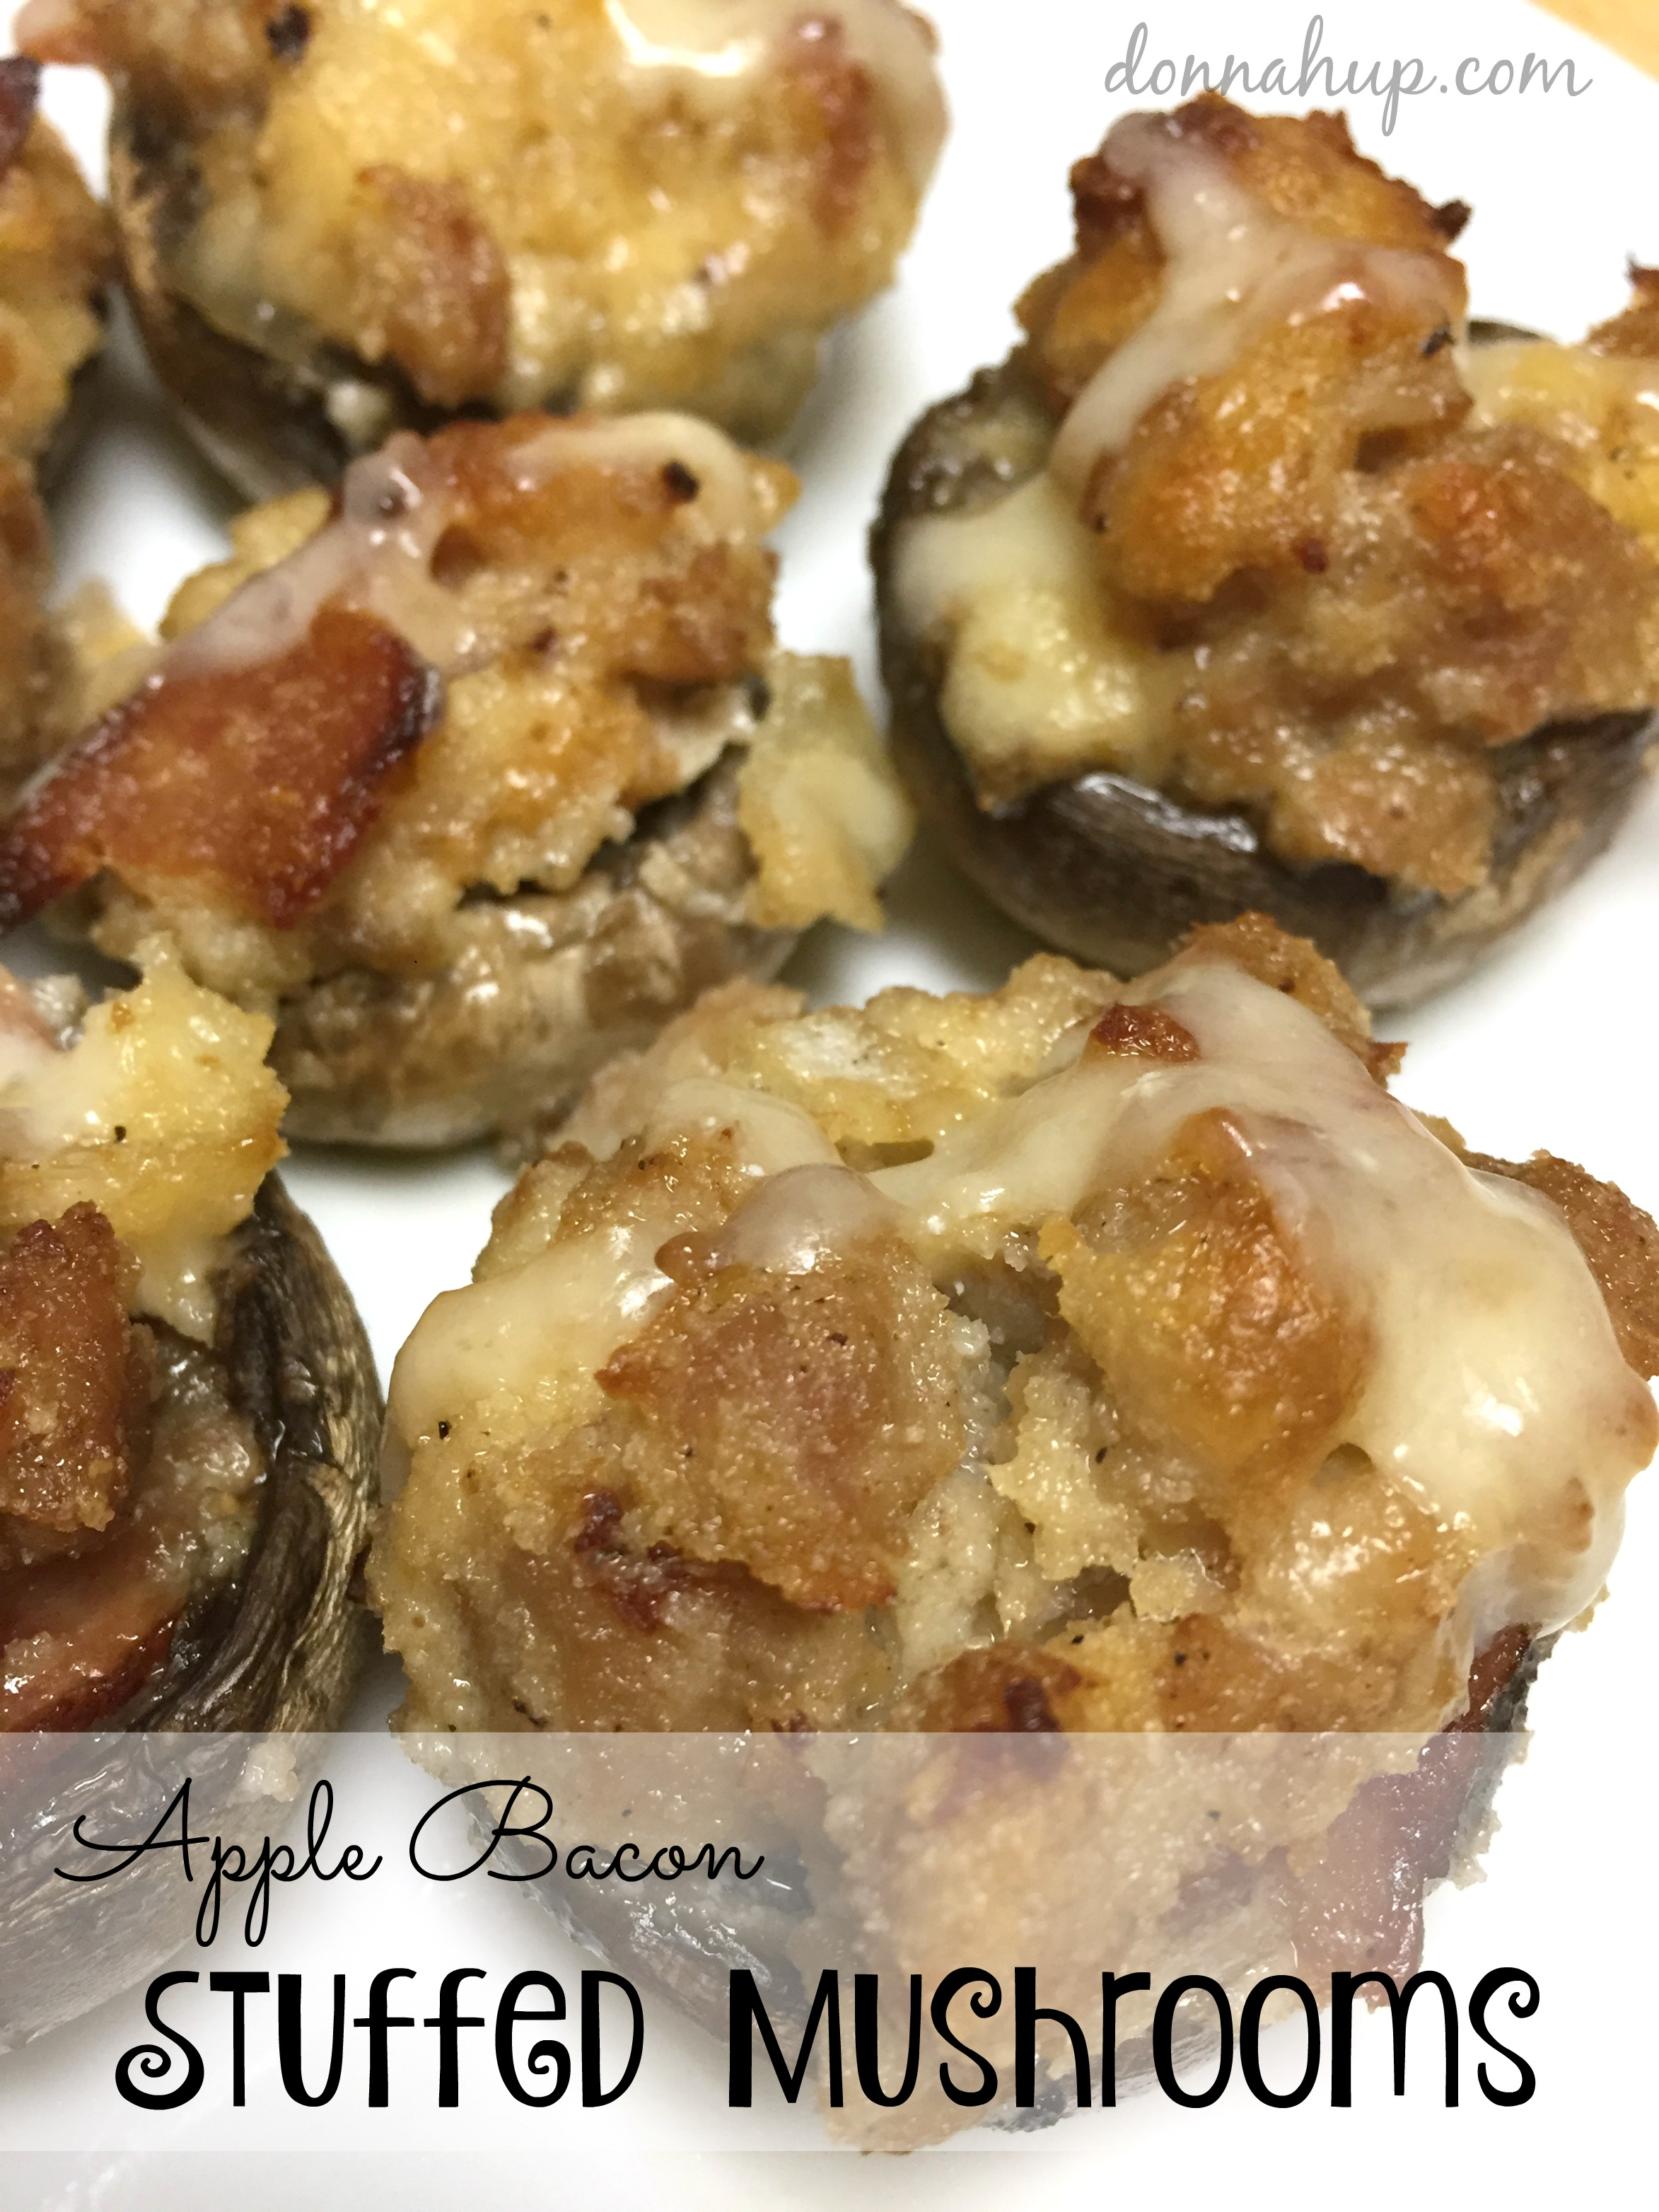 Appetizer Recipes Stuffed Mushrooms with Apple and Bacon